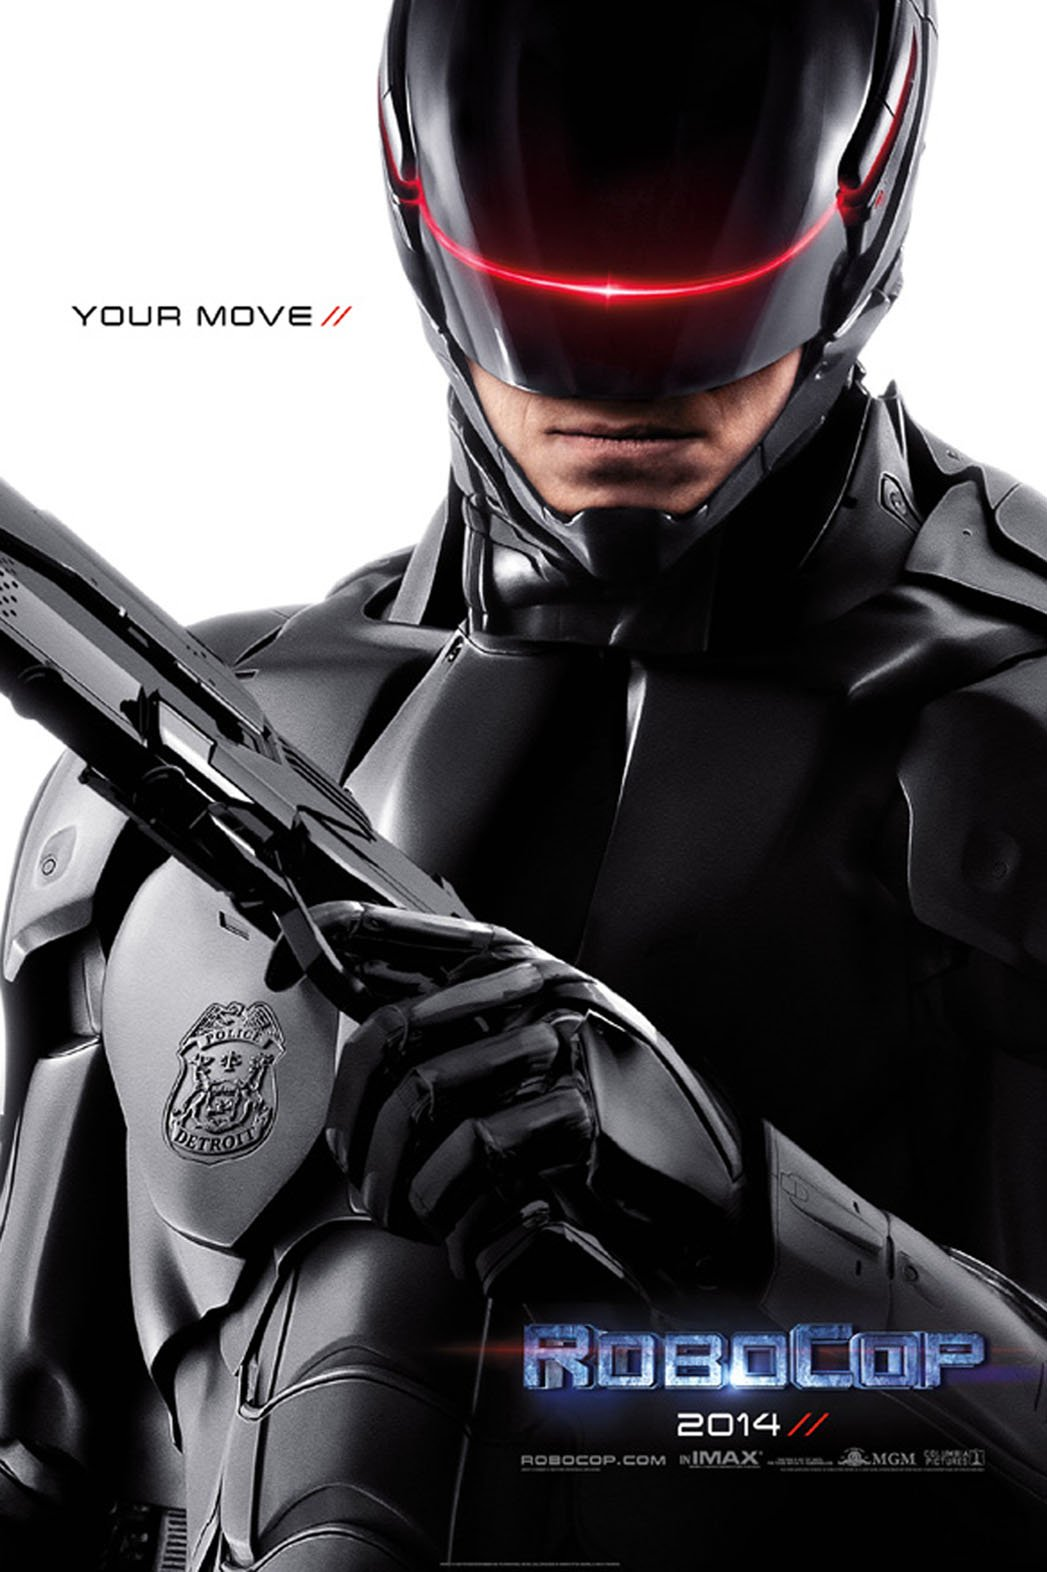 Poster for 2014's RoboCop remake